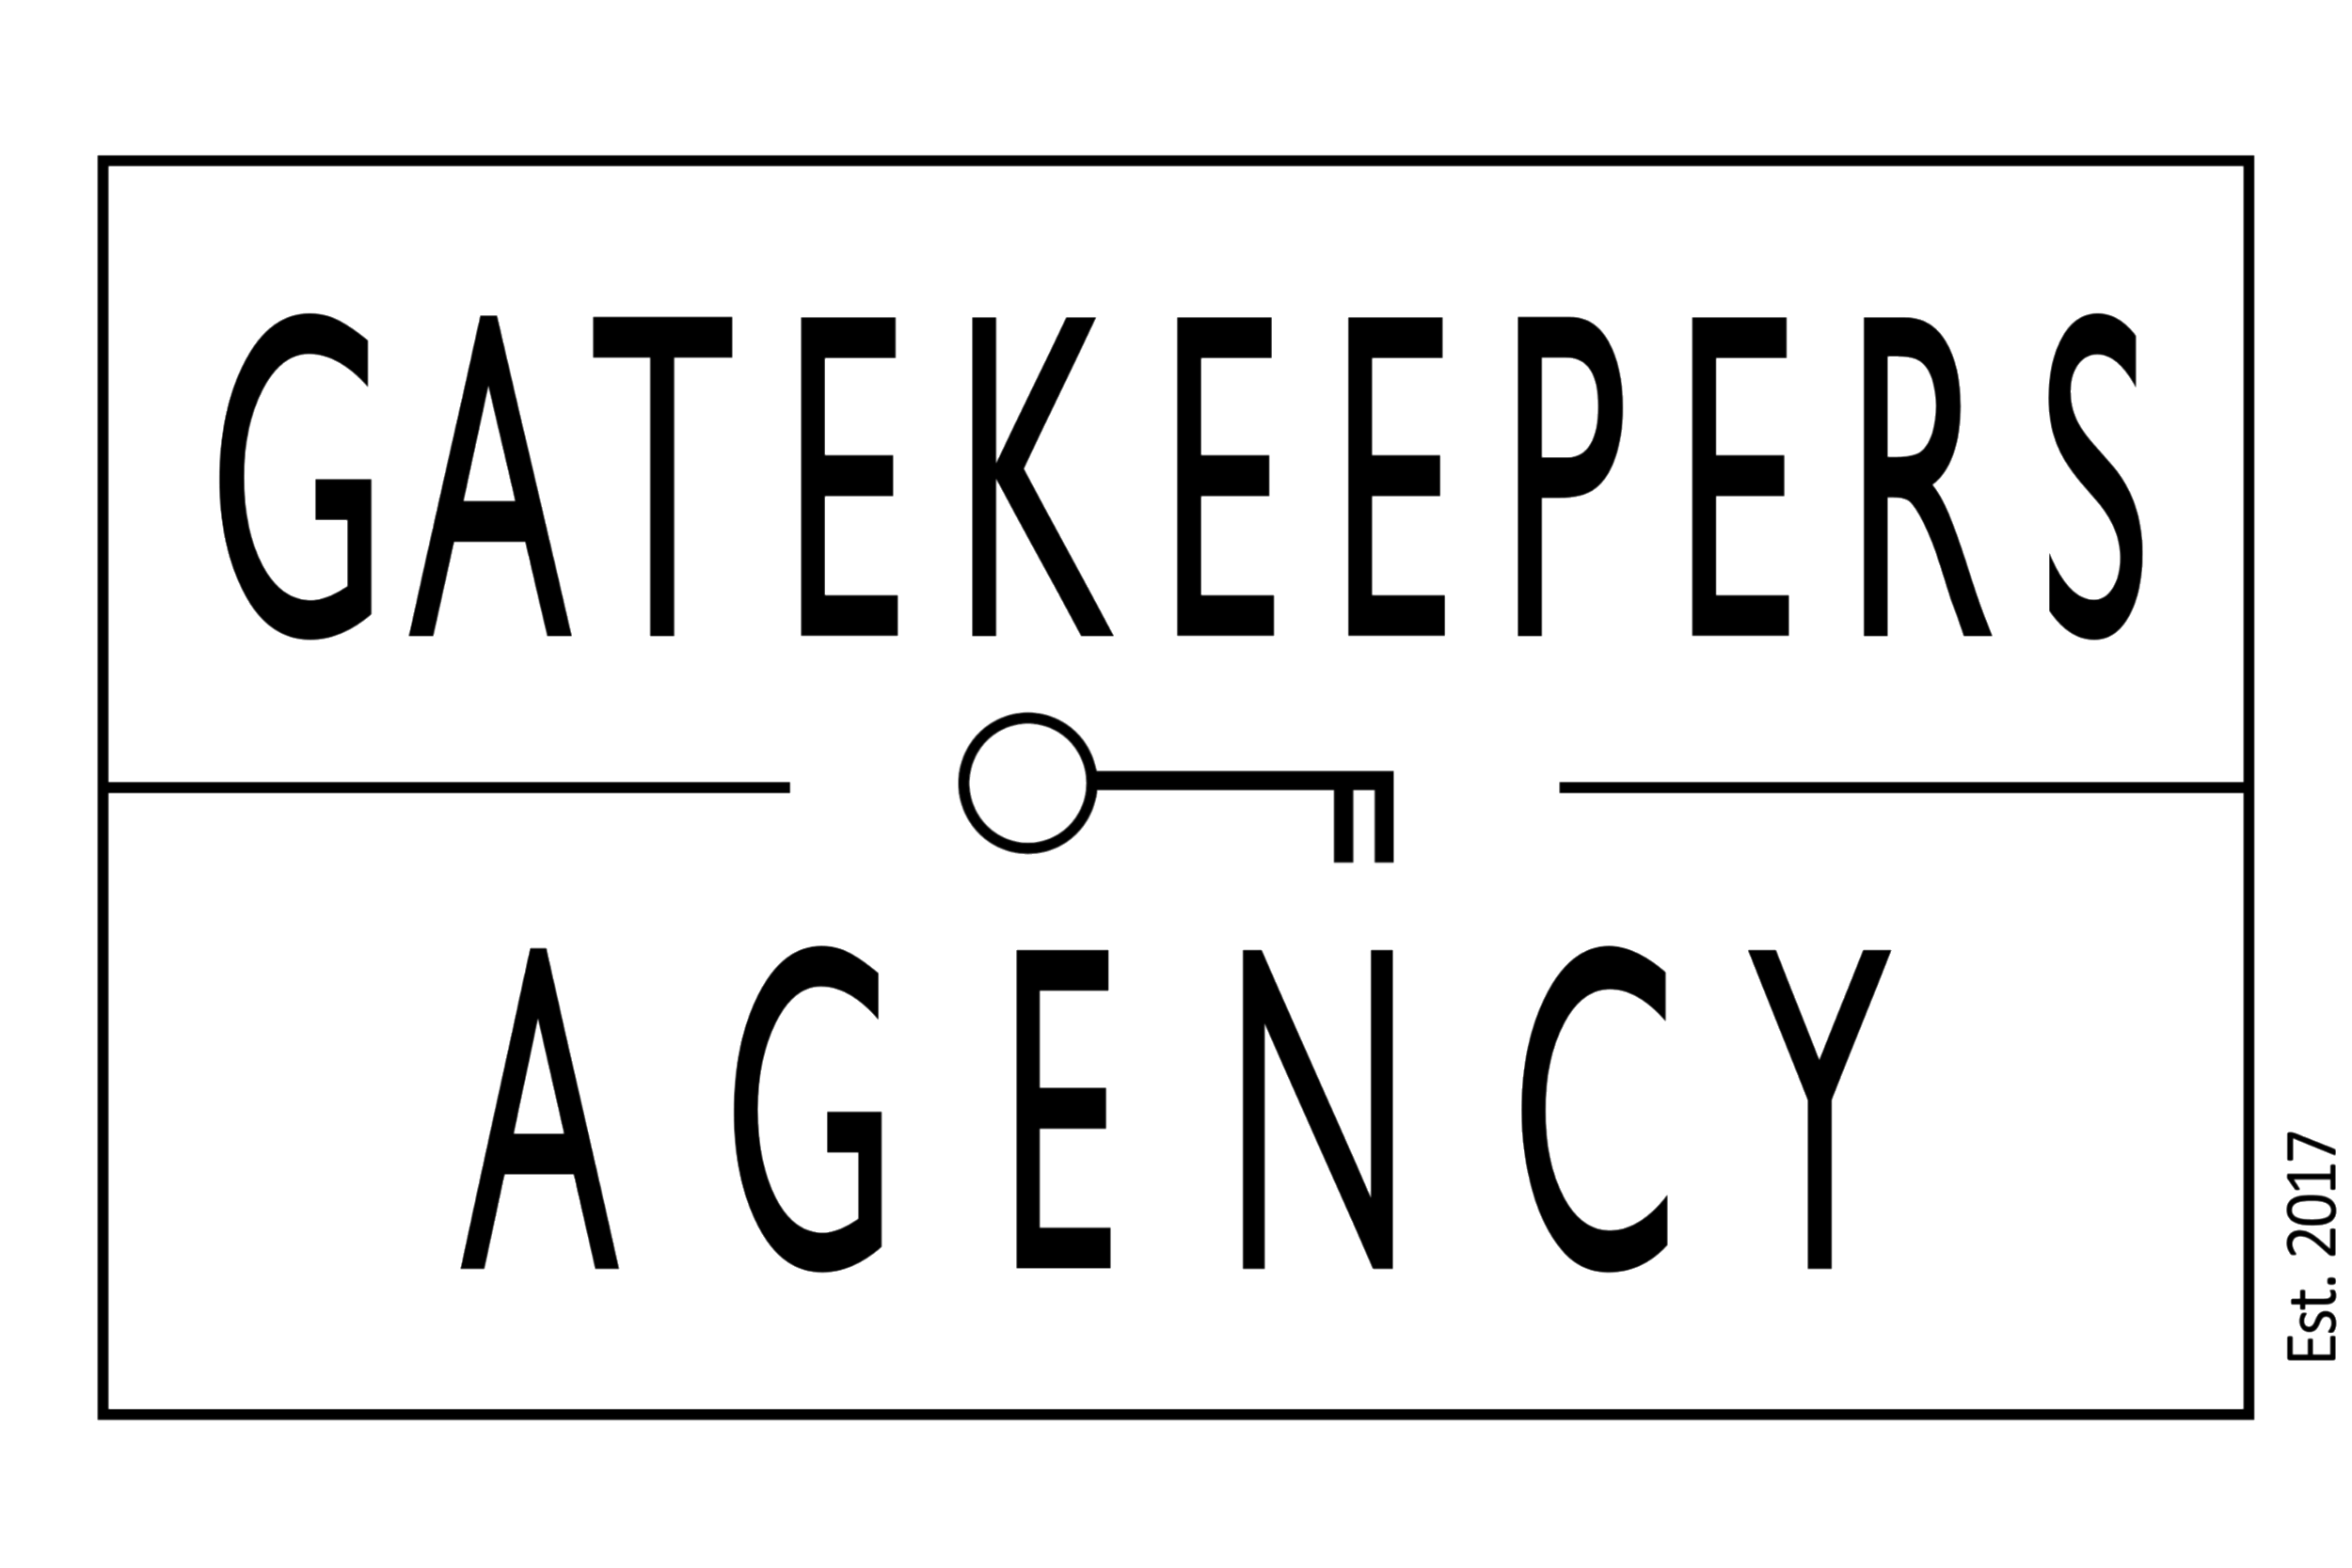 Gatekeepers Agency